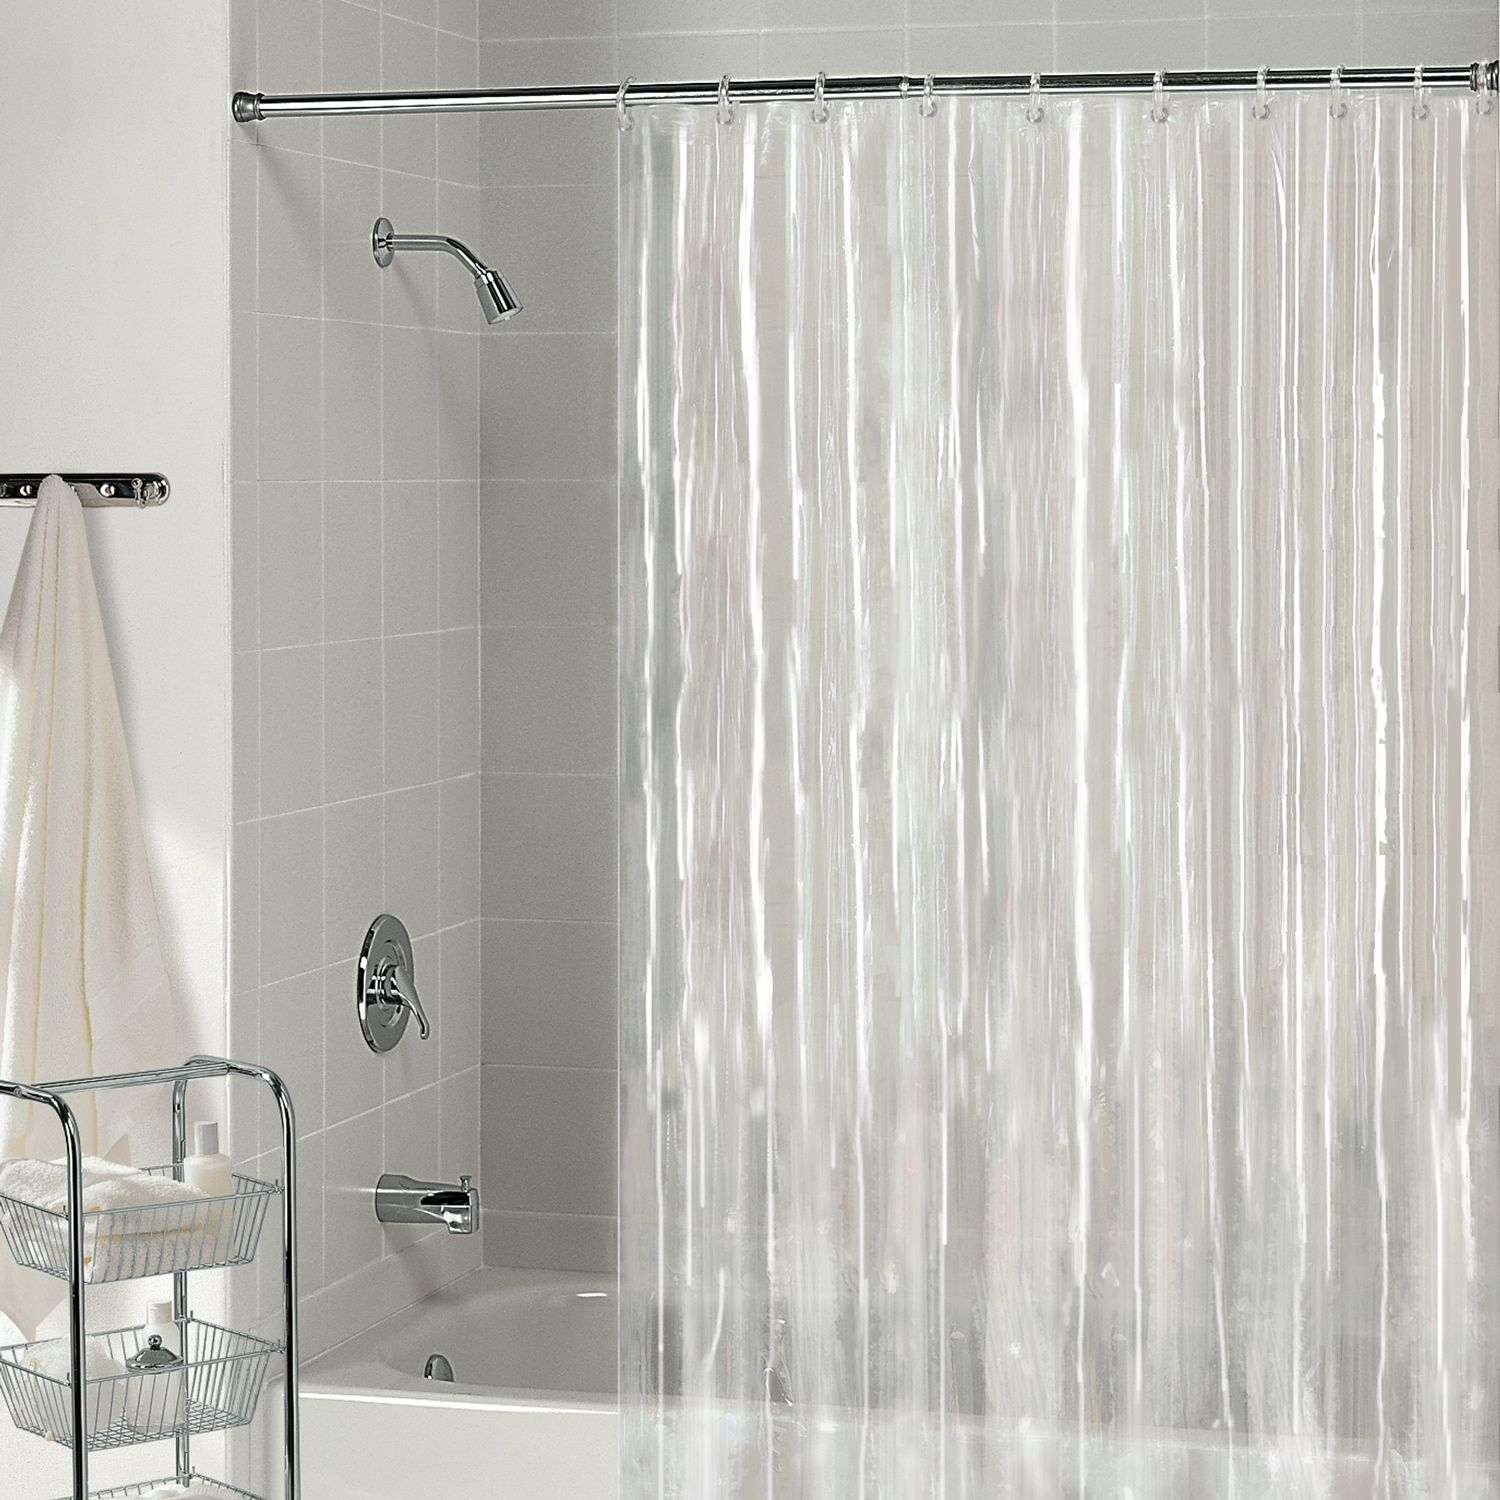 Heavy Duty Vinyl Shower Curtains • Shower Curtains Ideas